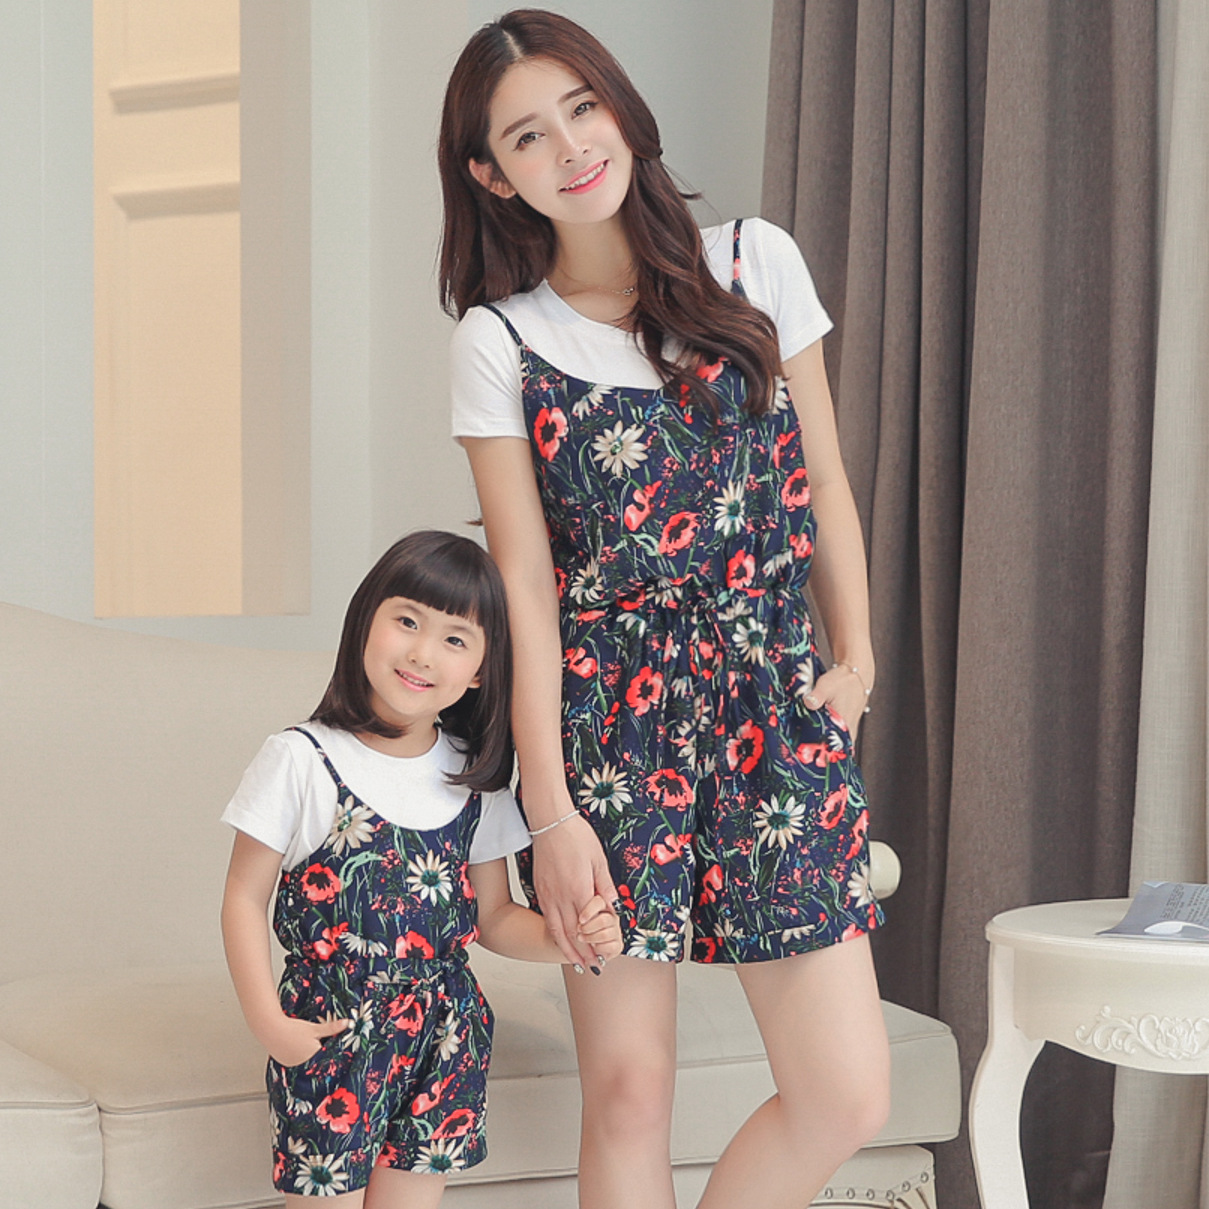 2015 Limited Sets Striped Cute 6112015 Summer New Water Skirt Two Piece Flower Siamese Children Female Clothing Wholesale Agent(China (Mainland))